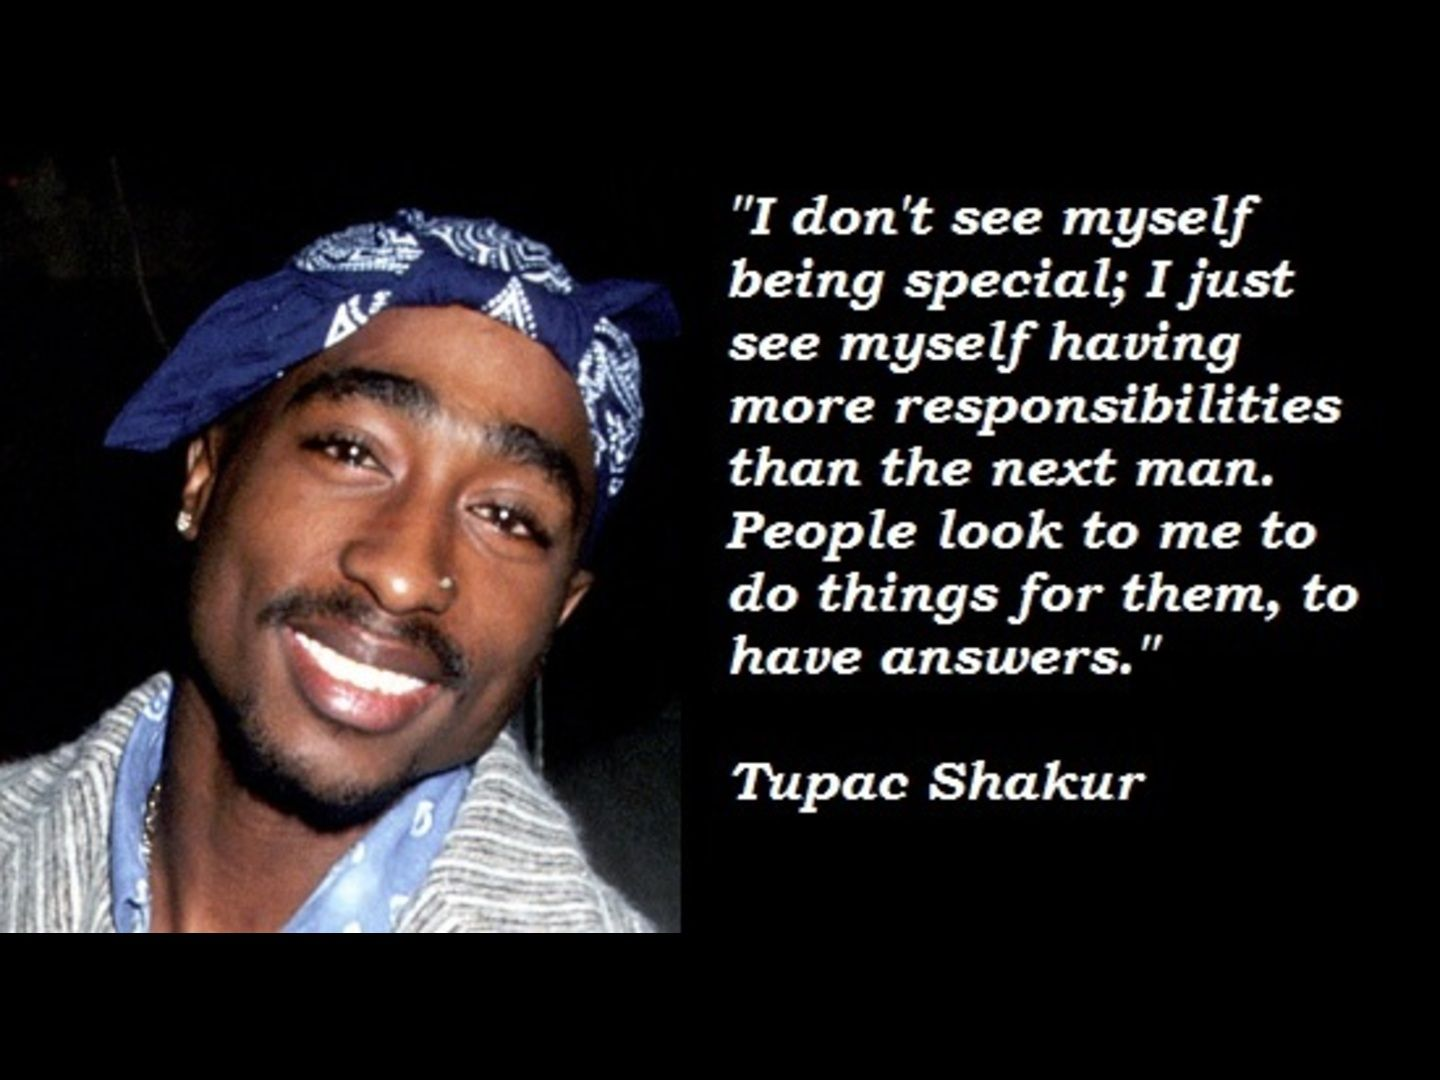 Tupac Quotes Stunning Tupac Quotes On Changes Tupac Shakur Quotes Hd Wallpaper 11 Pictures